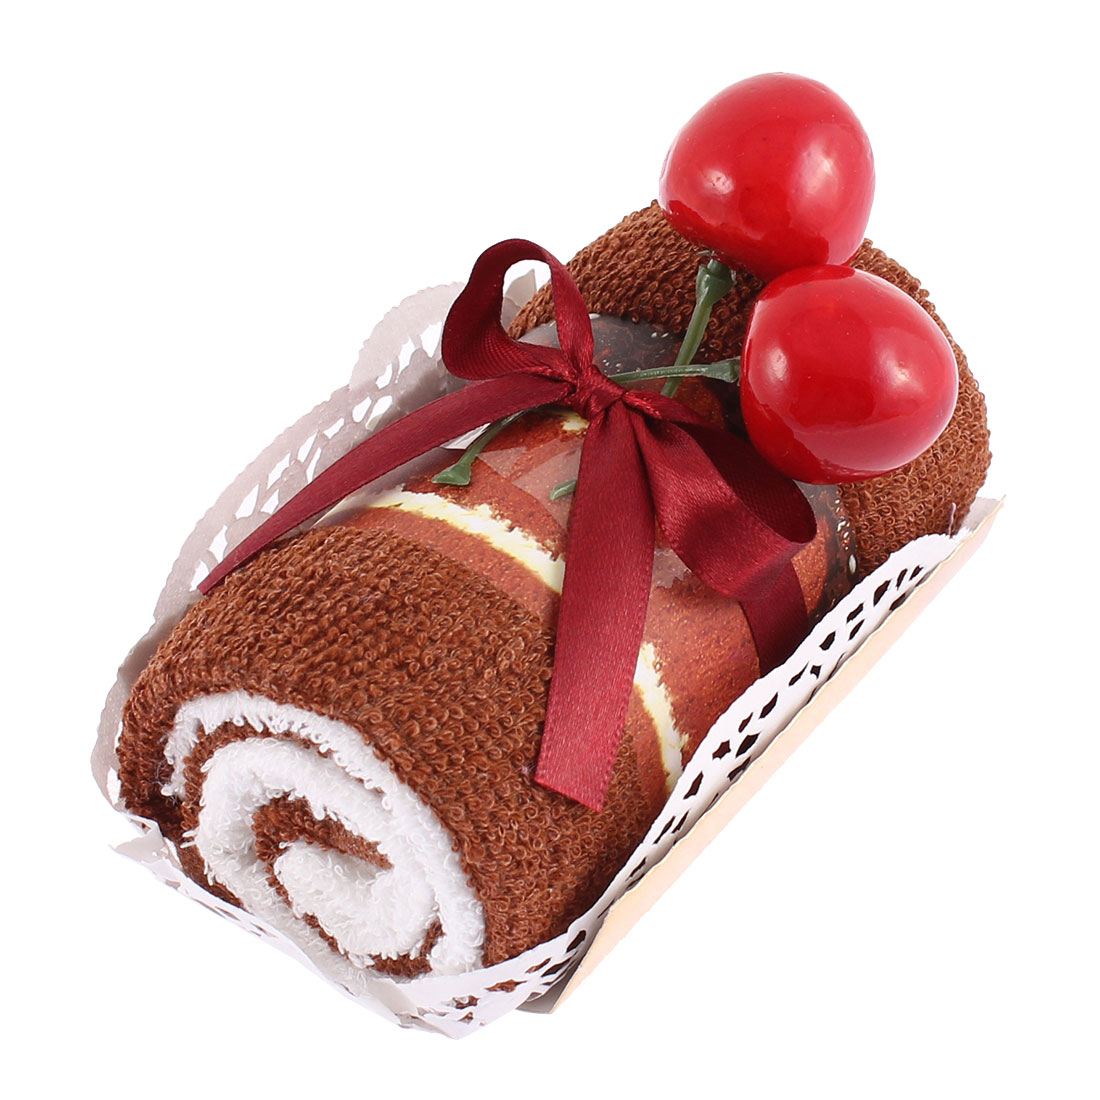 Roll Cake Design Cherry Decor Wedding Party Gift Washcloth Hand Towel Brown